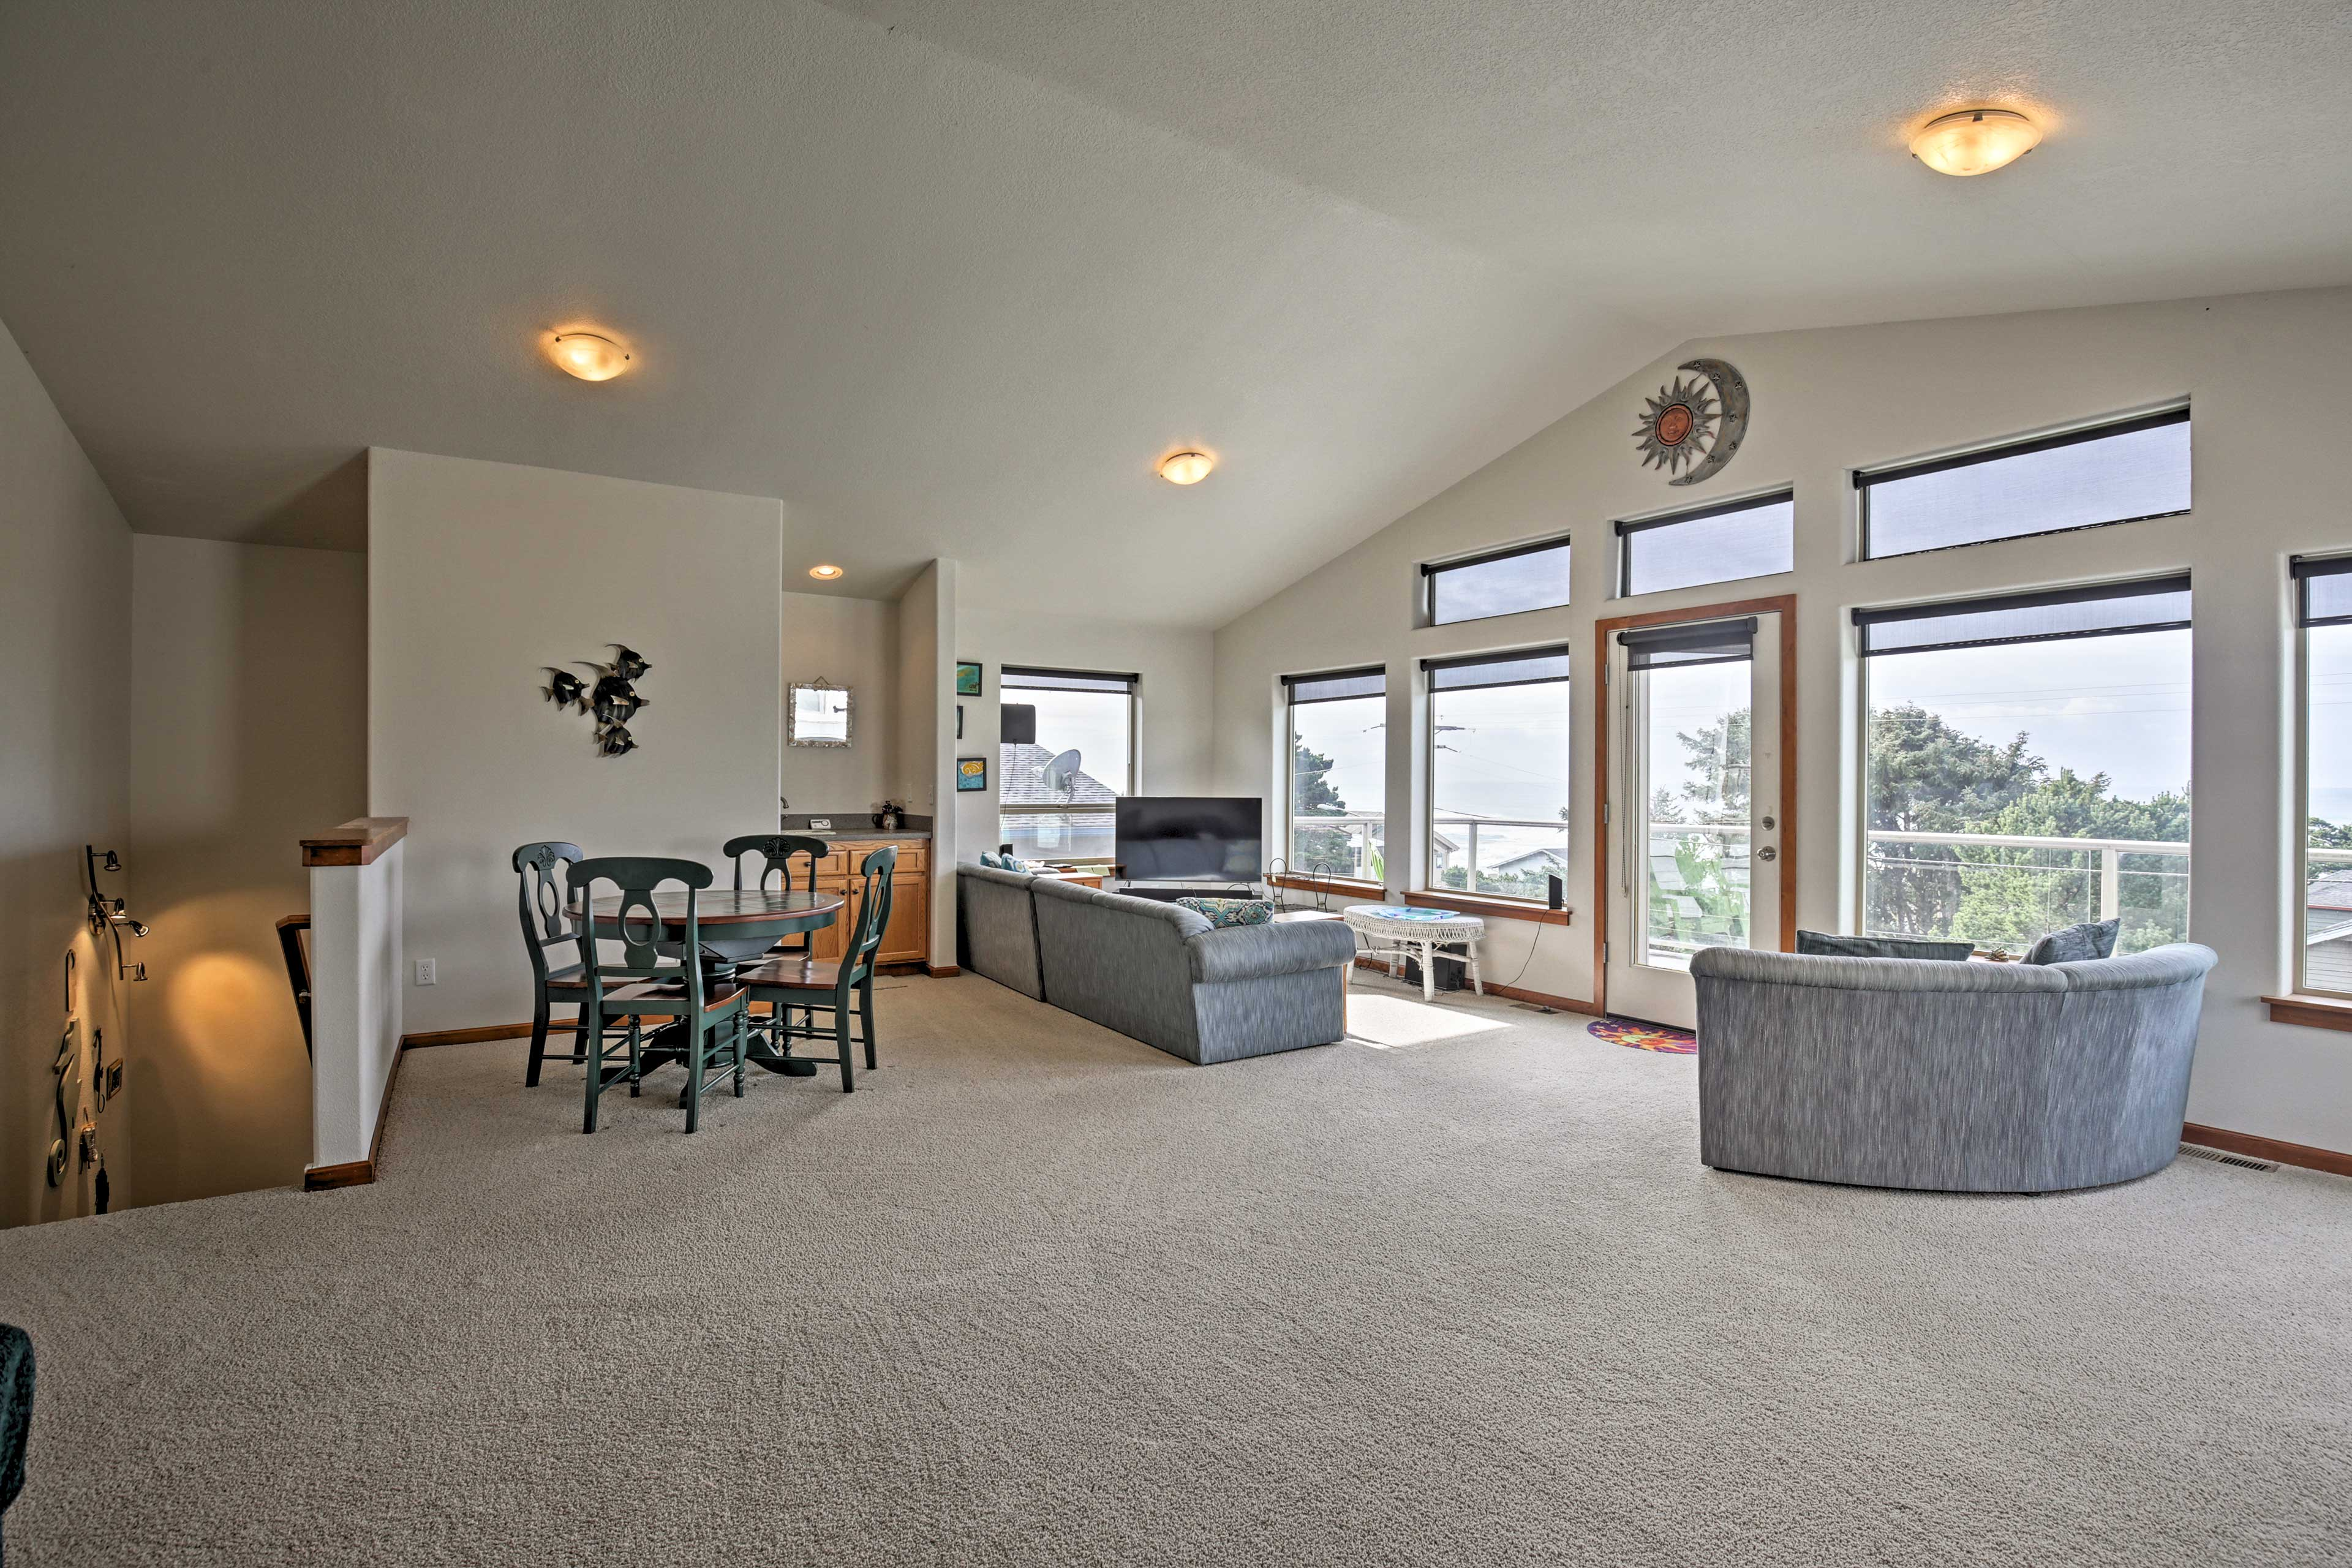 The split-level floor plan includes a spacious living area upstairs.